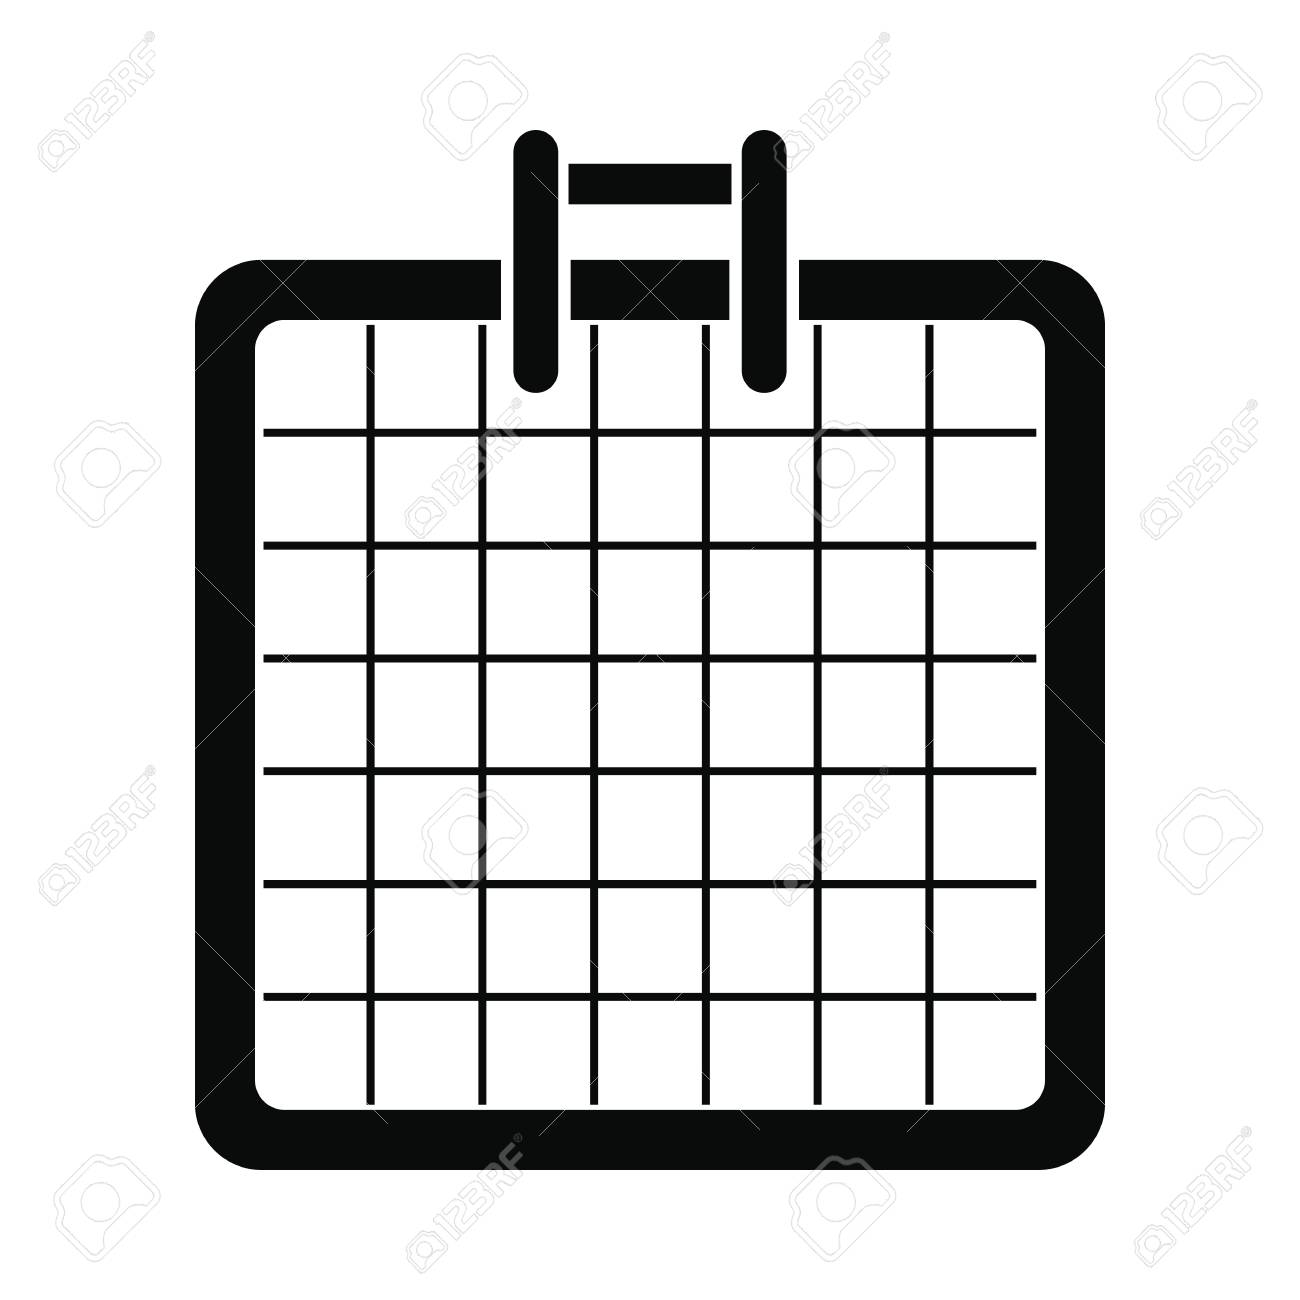 Swimming Pool Black Simple Icon Isolated On White Background Stock Vector